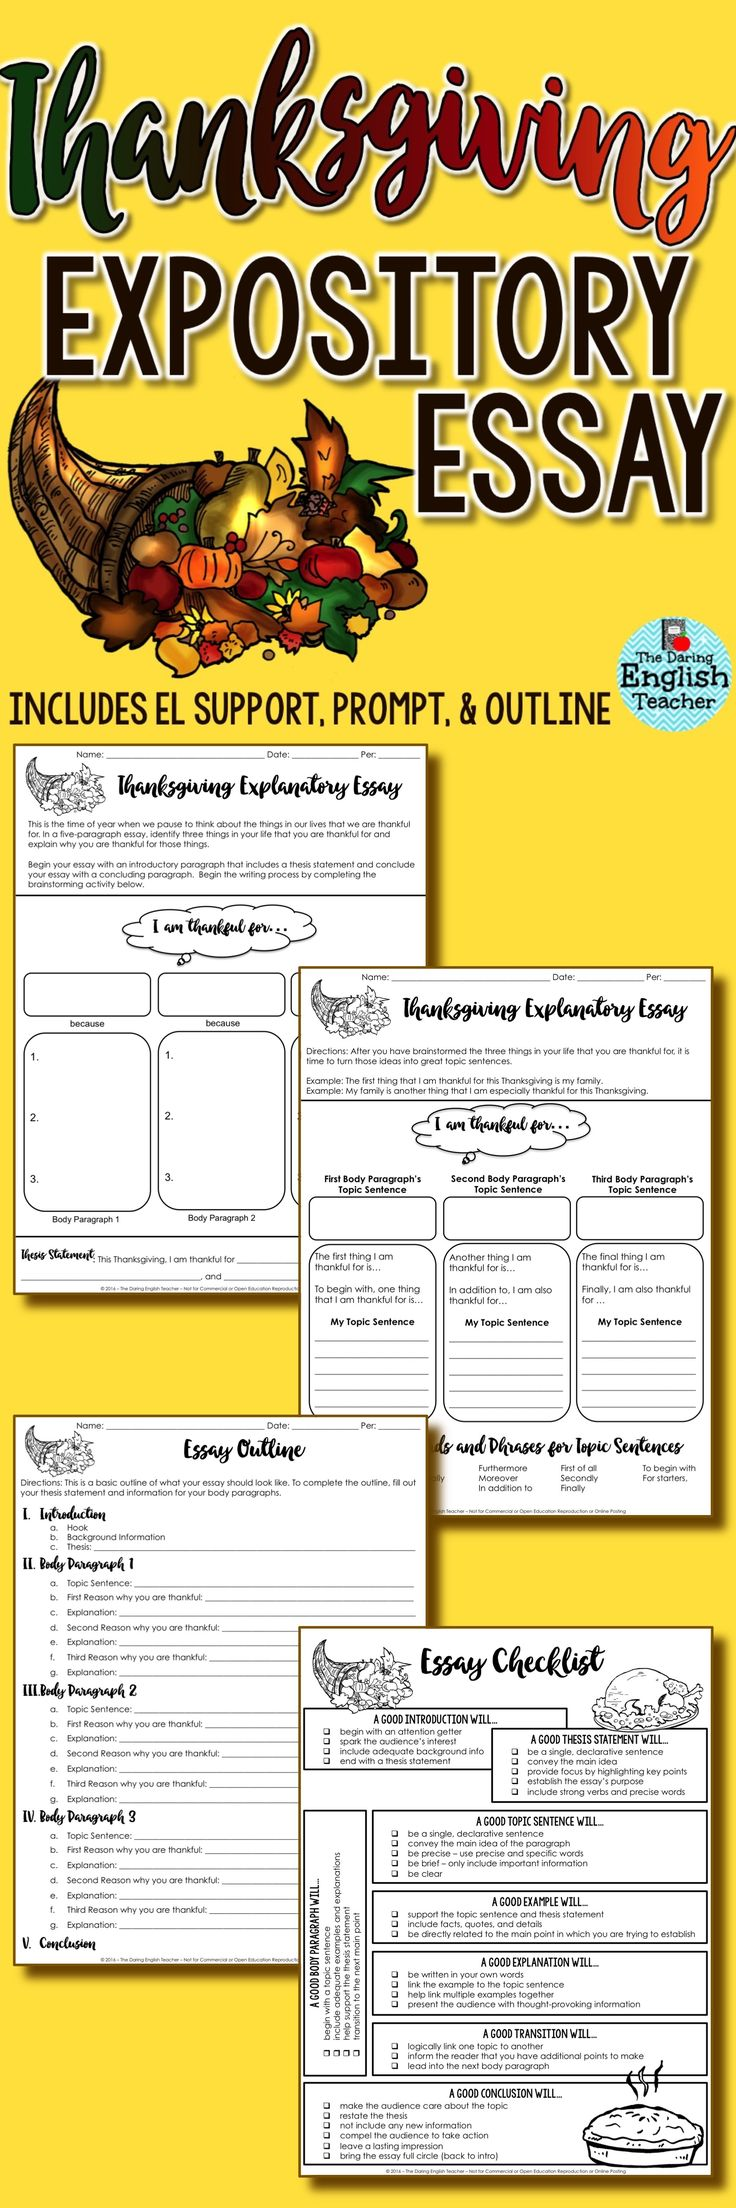 Thanksgiving expository writing for middle school and high school ELA. Includes: essay prompt, brainstorming, and outline.